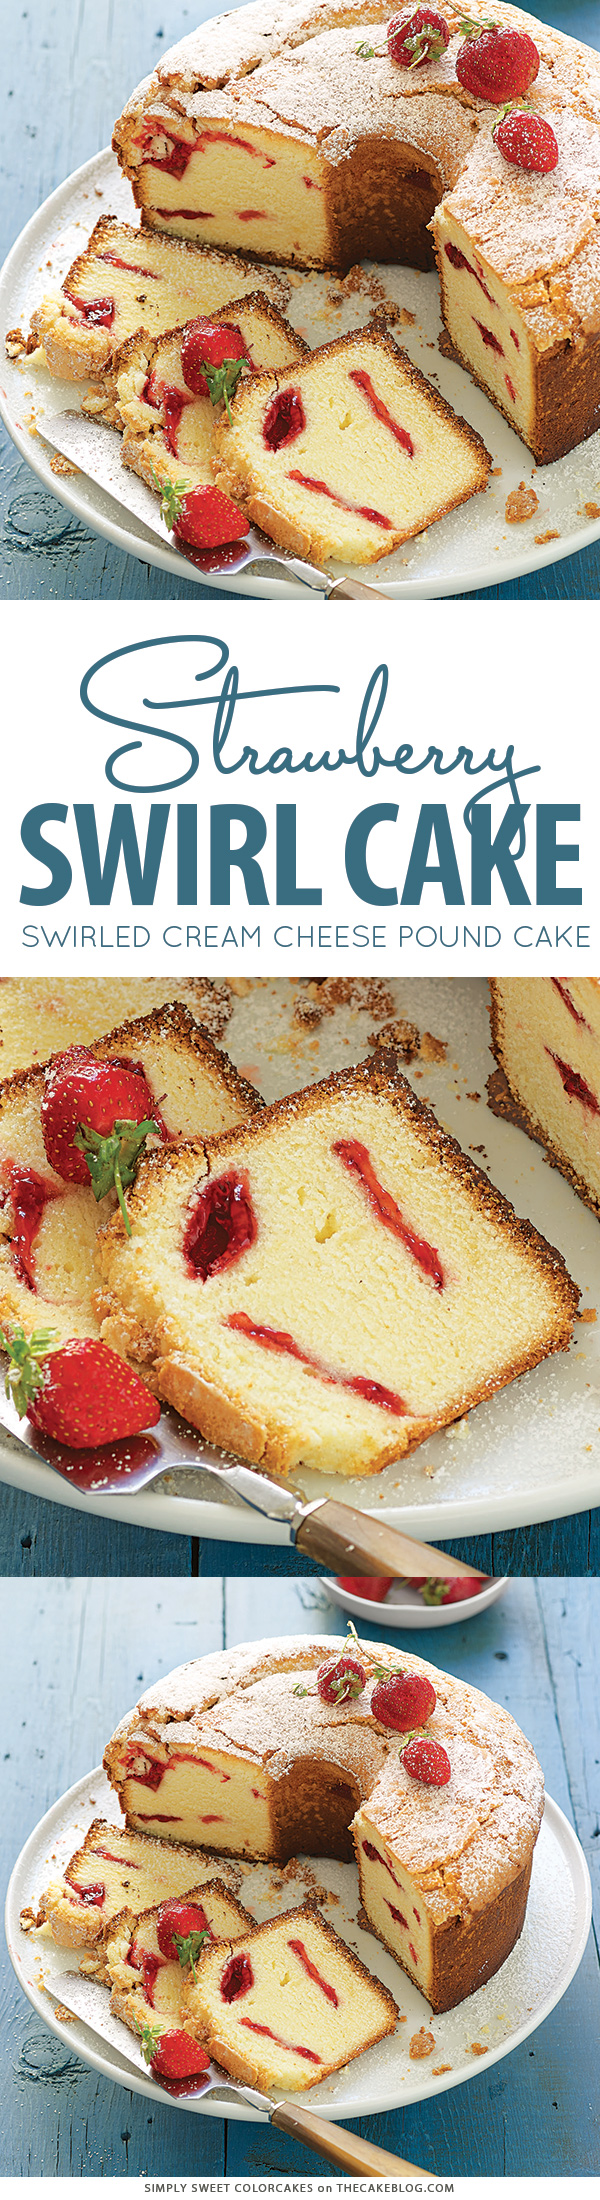 Strawberry Swirl Cream Cheese Pound Cake | on TheCakeBlog.com